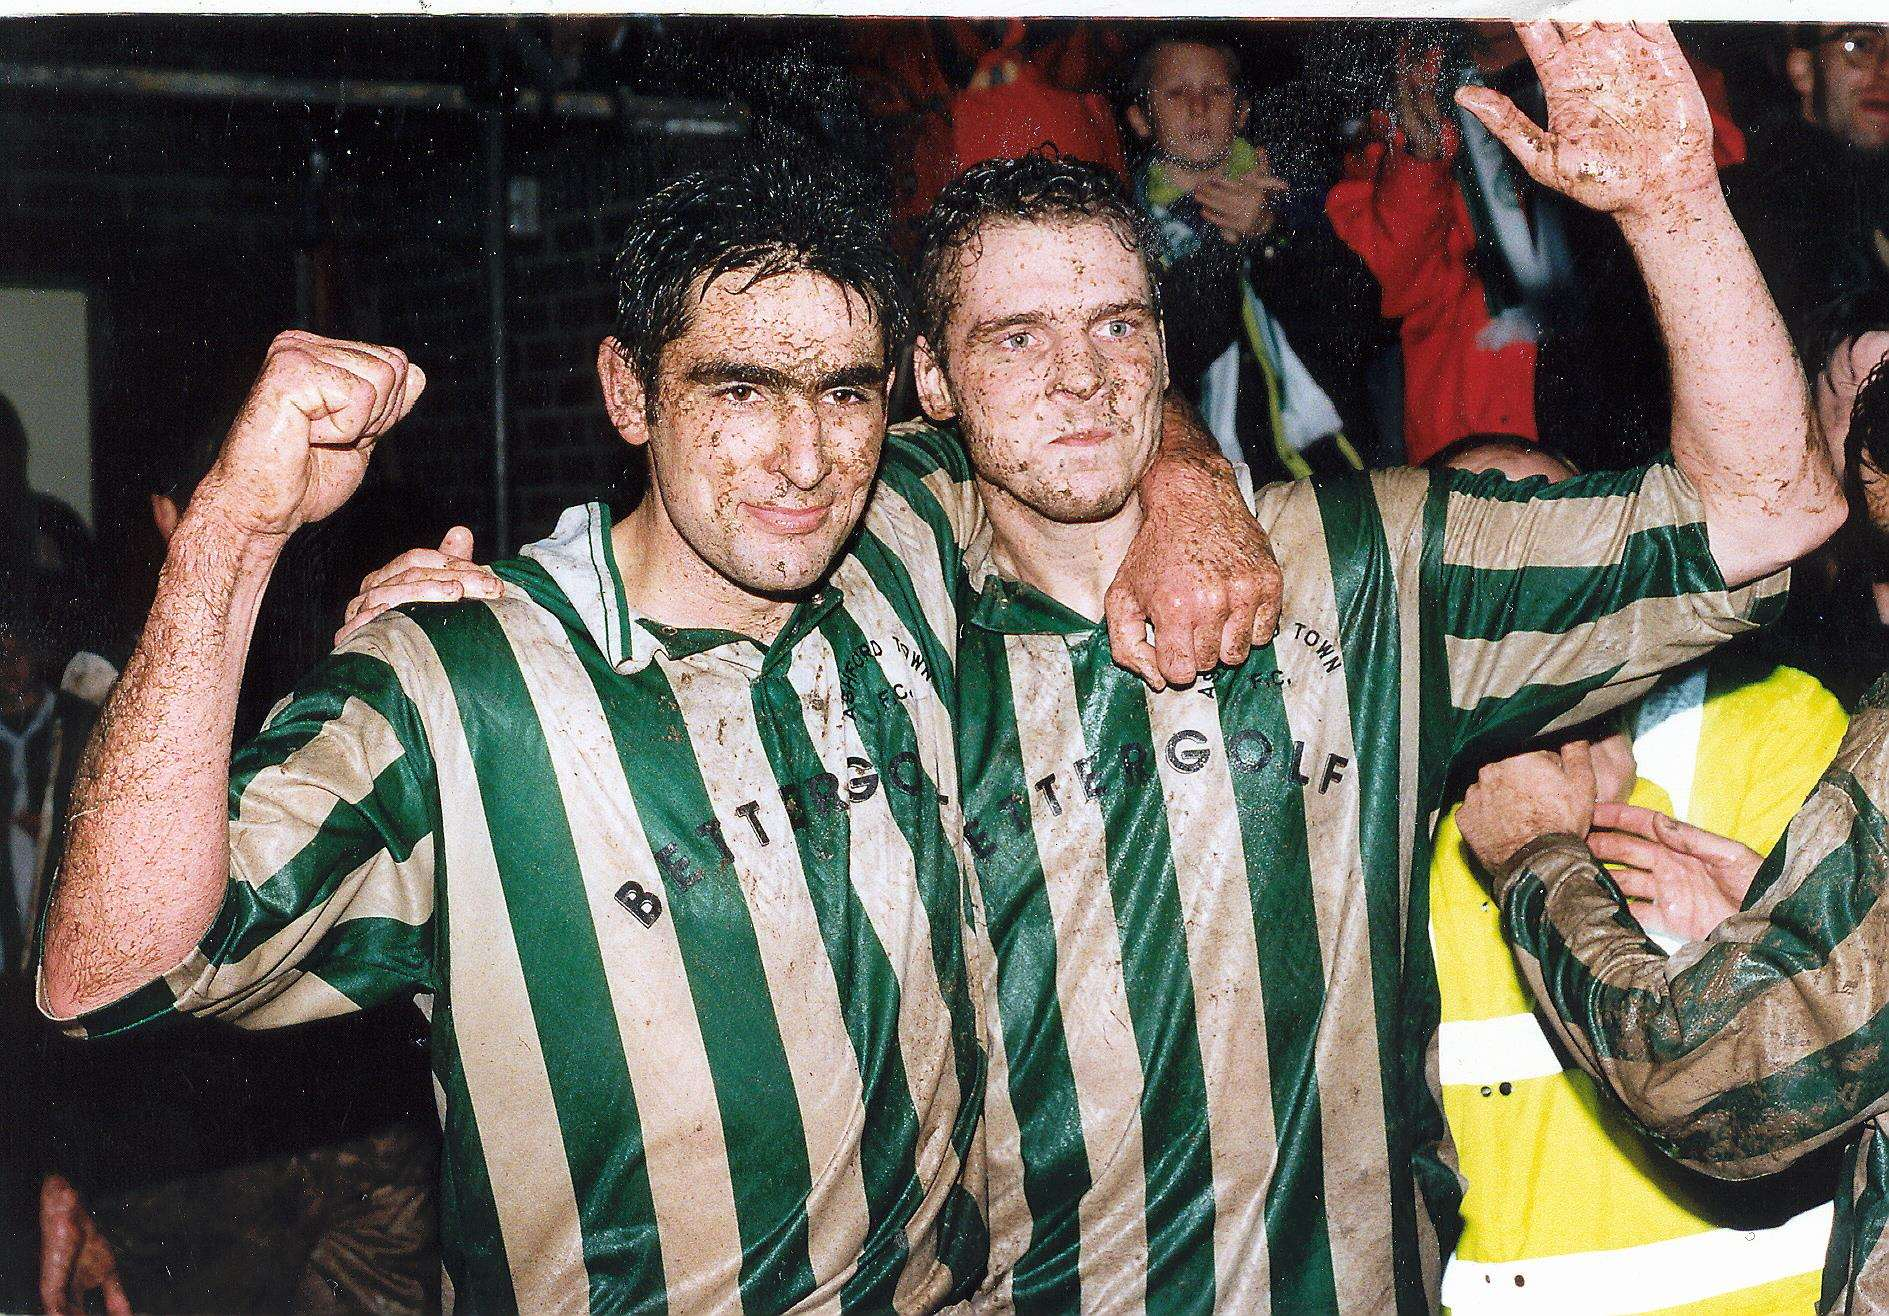 Dave Arter and Nicky Dent celebrate in the mud after Ashford Town's FA Cup home draw with Fulham